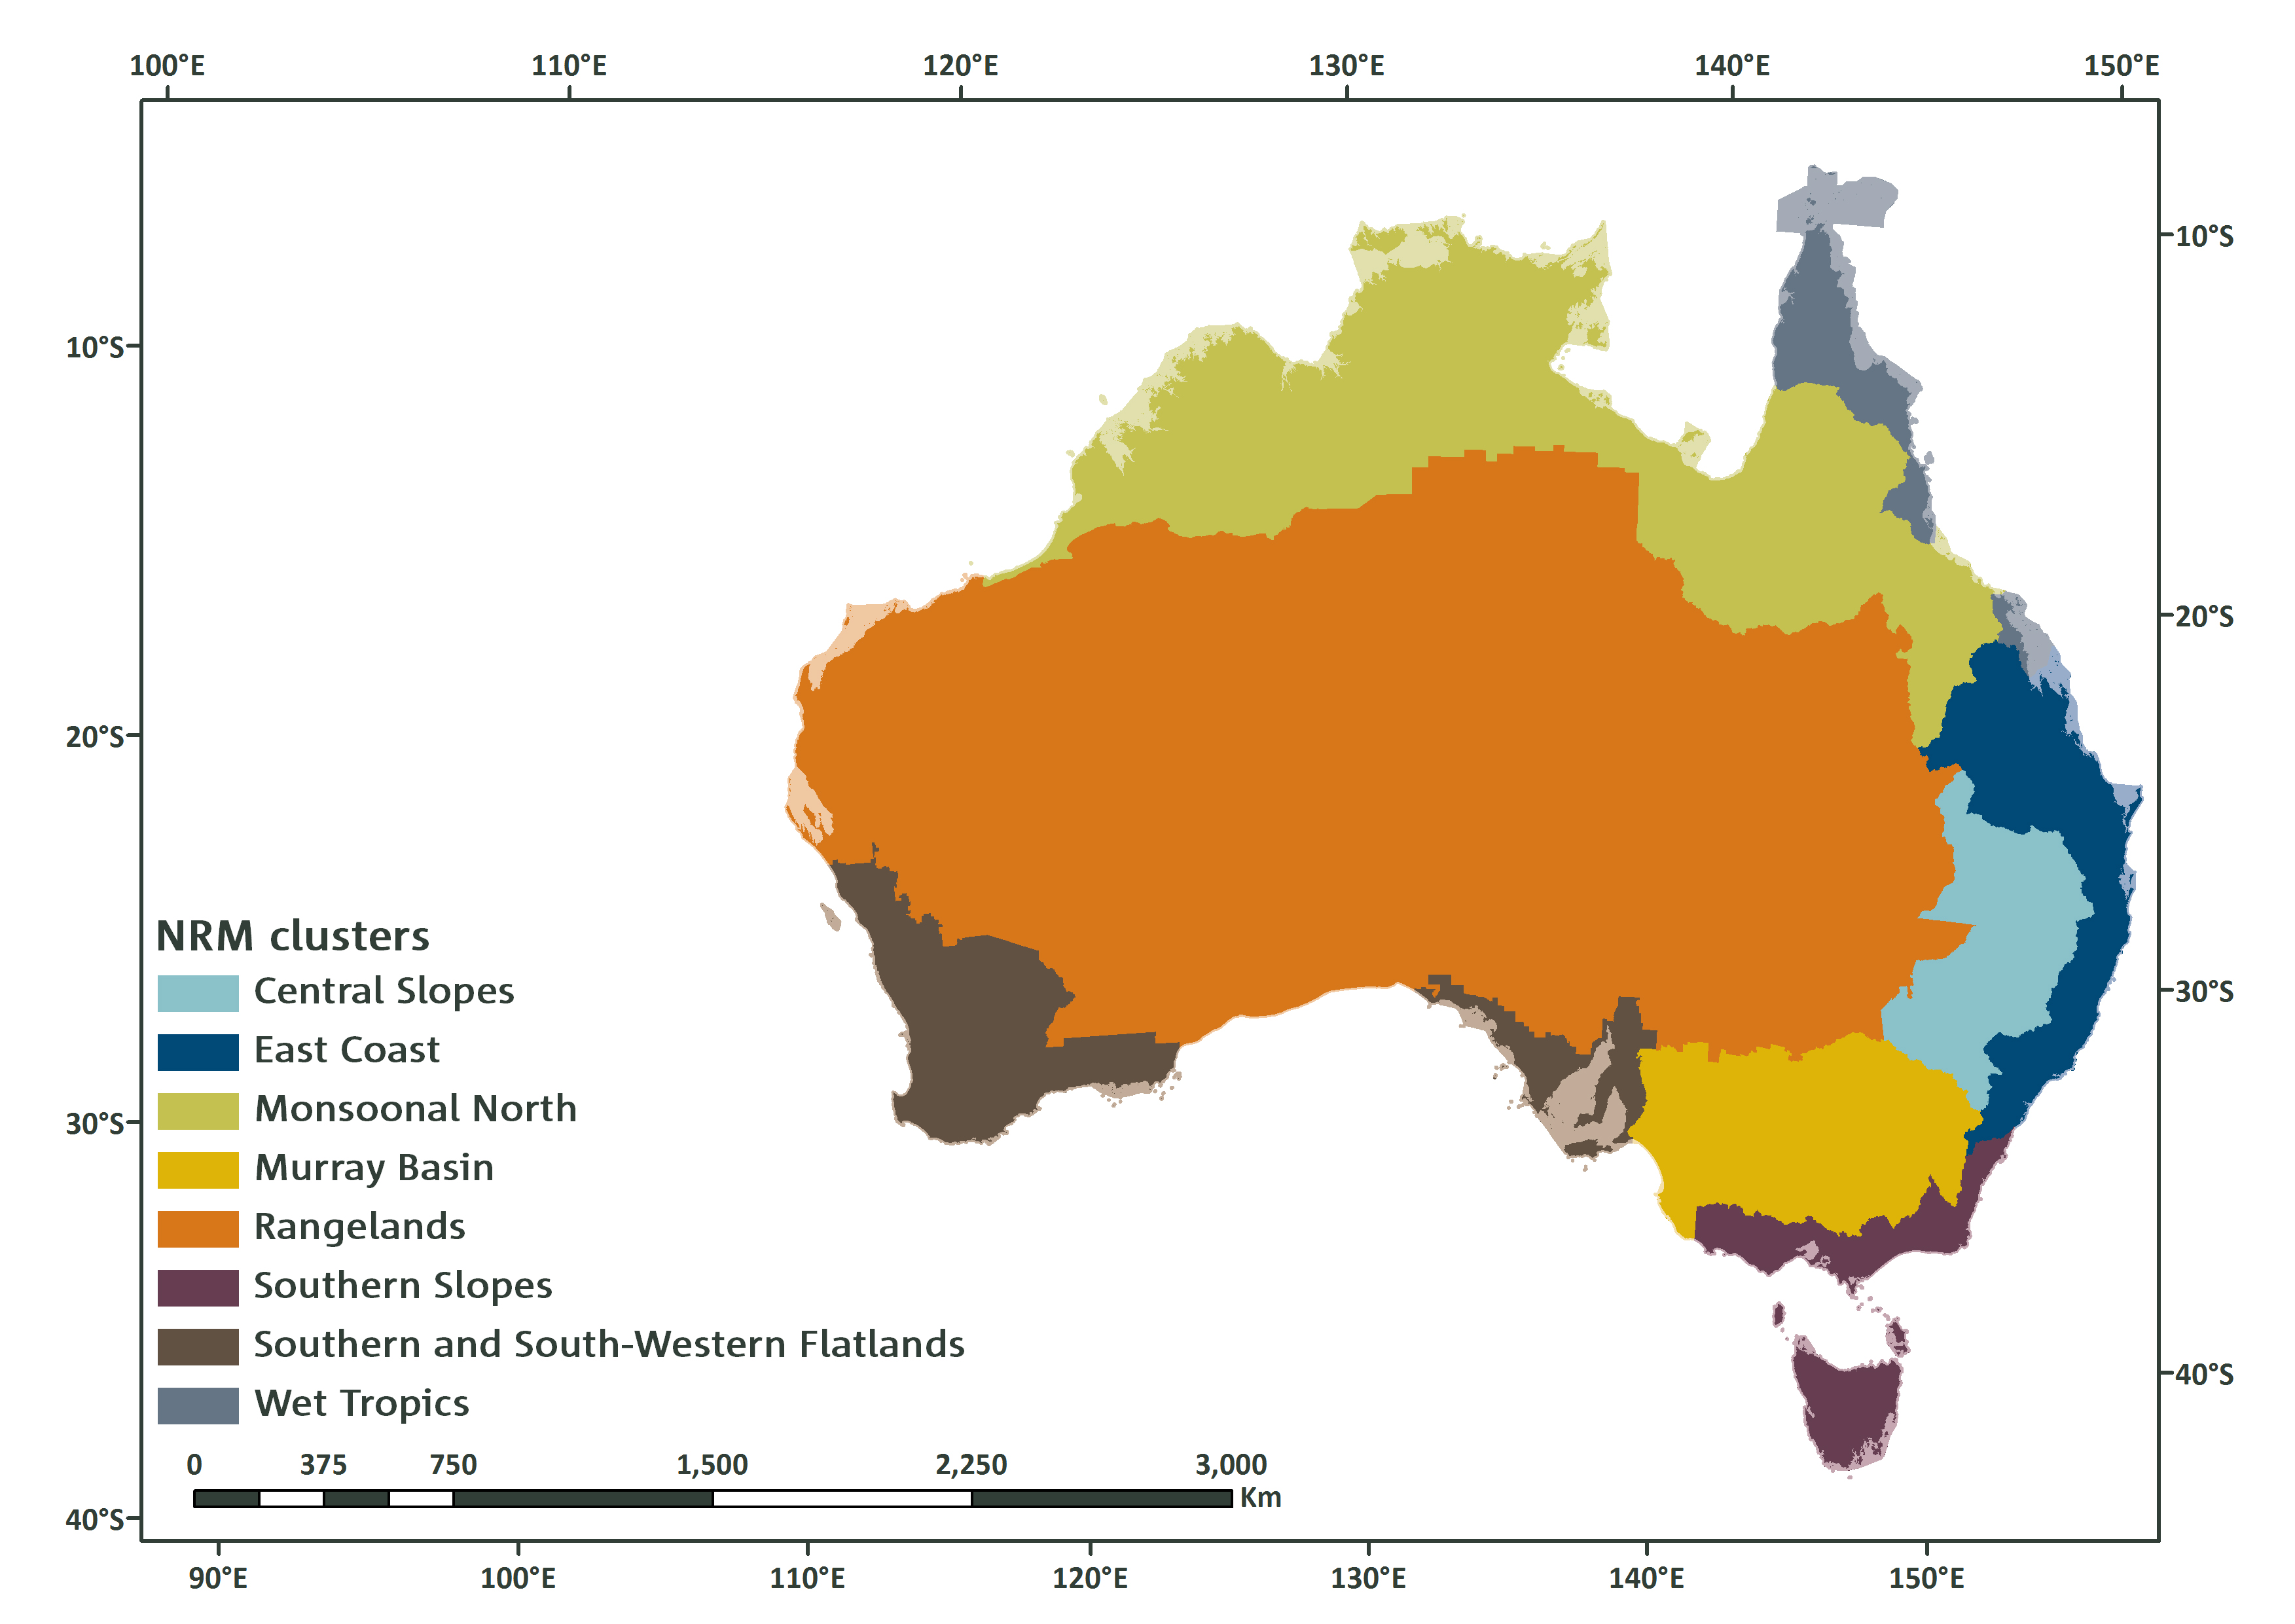 Map of Australia overlaid with blocks of colour which indicate natural resource management clusters.